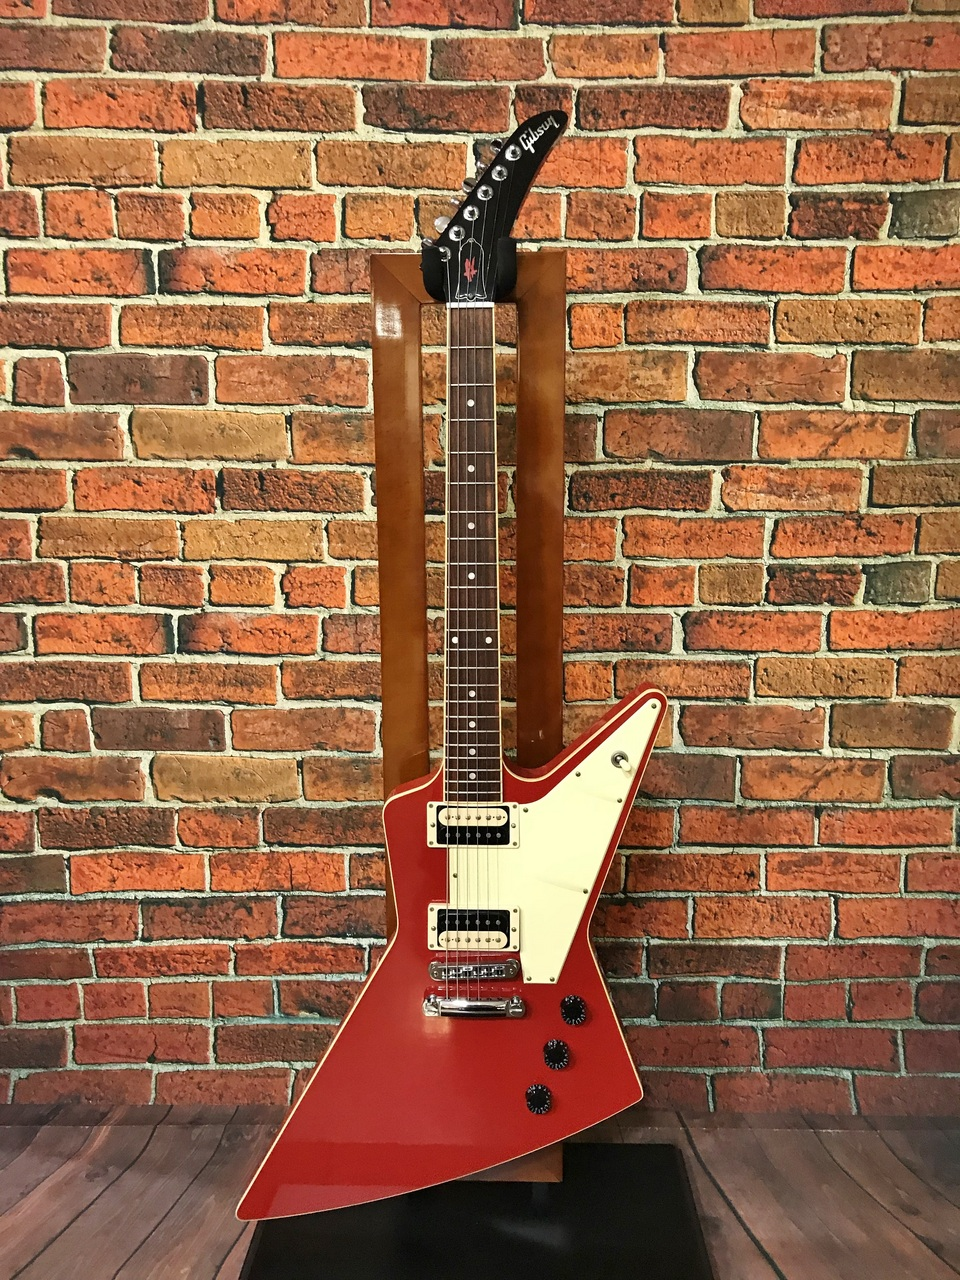 Gibson Sammy Hagar Signature Explorer Limited Edition [used beauty products] [Made in 2011]